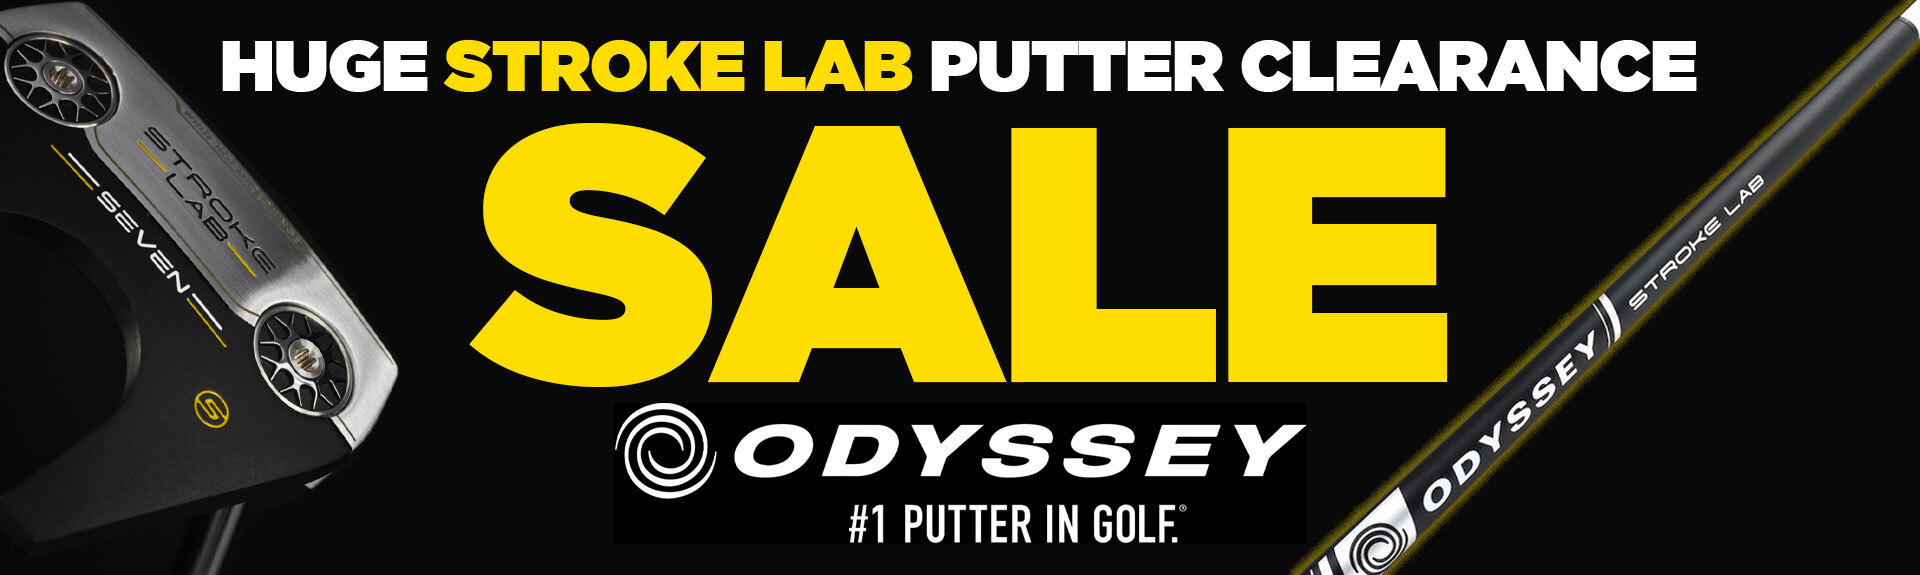 Odyssey Stroke Lab Putter Clearance